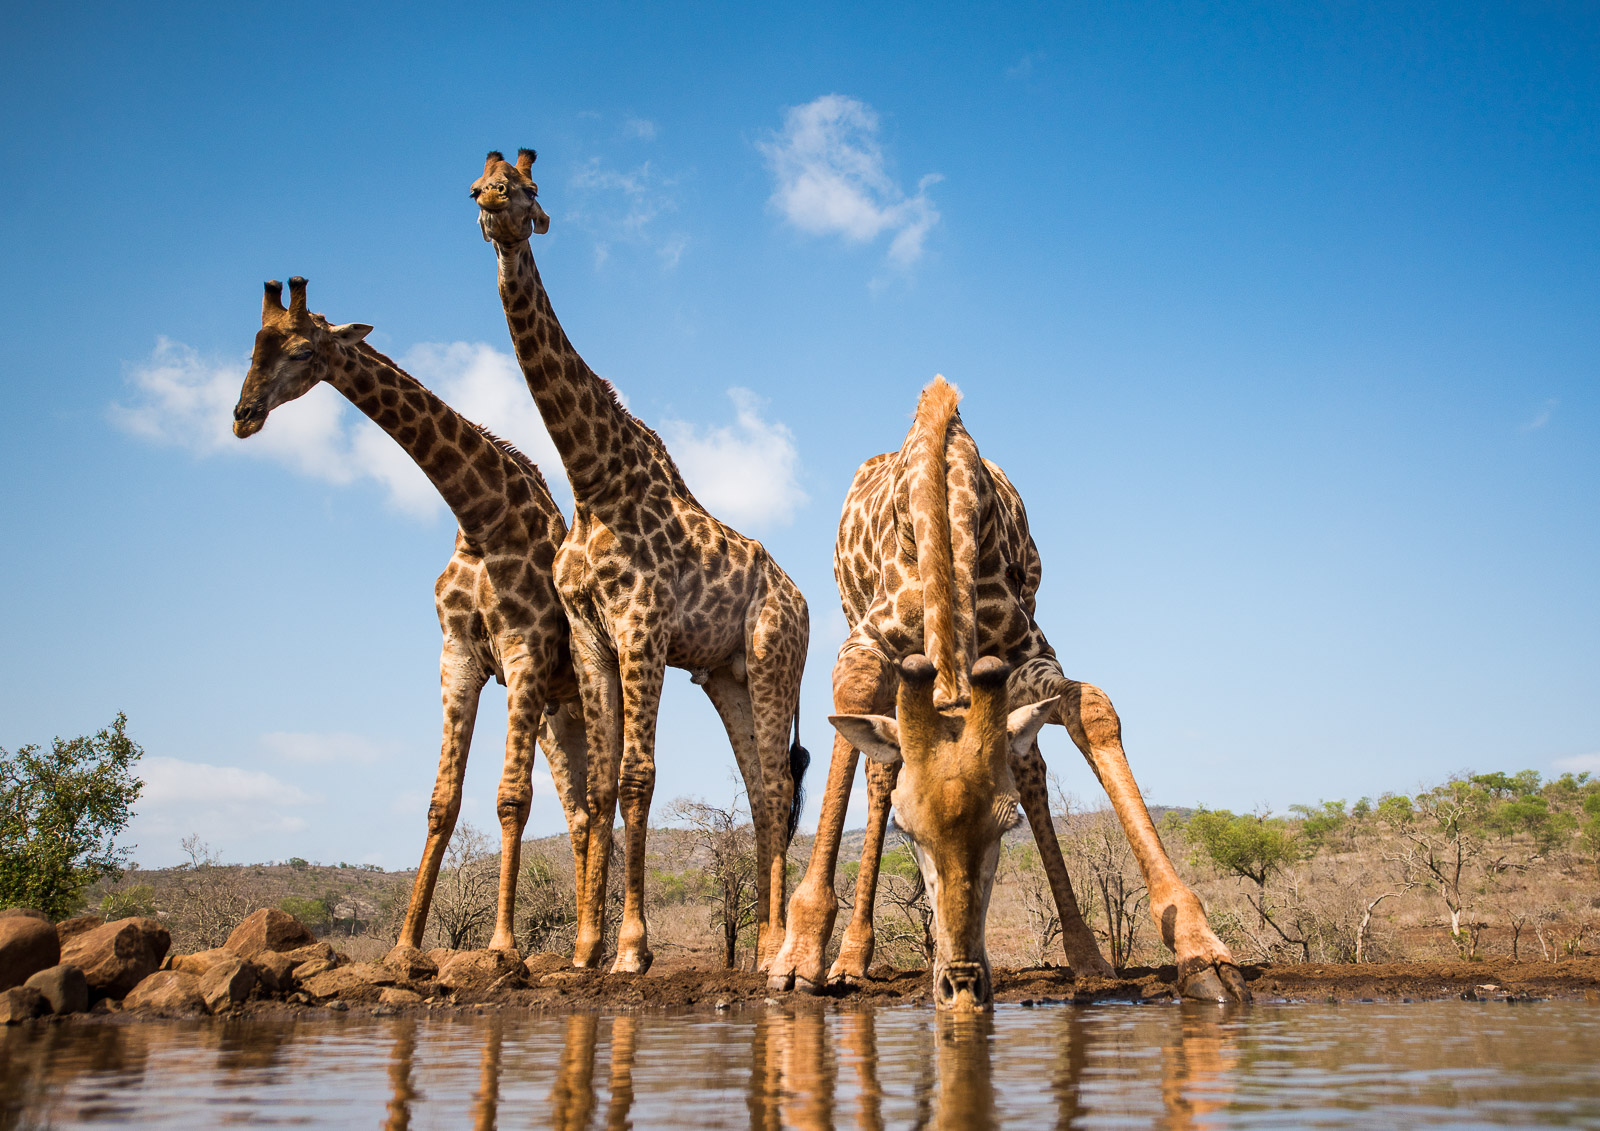 THIRSTY WORK A giraffe stoops to drink at the Umgodi waterhole while two others stand sentry, maybe! The perspective is exaggerated by the proximity of the drinking giraffe and use of a wide angle lens. It sent the adrenalin racing to be this close to these amazing creatures without their being aware. Zimanga Private Reserve, South Africa